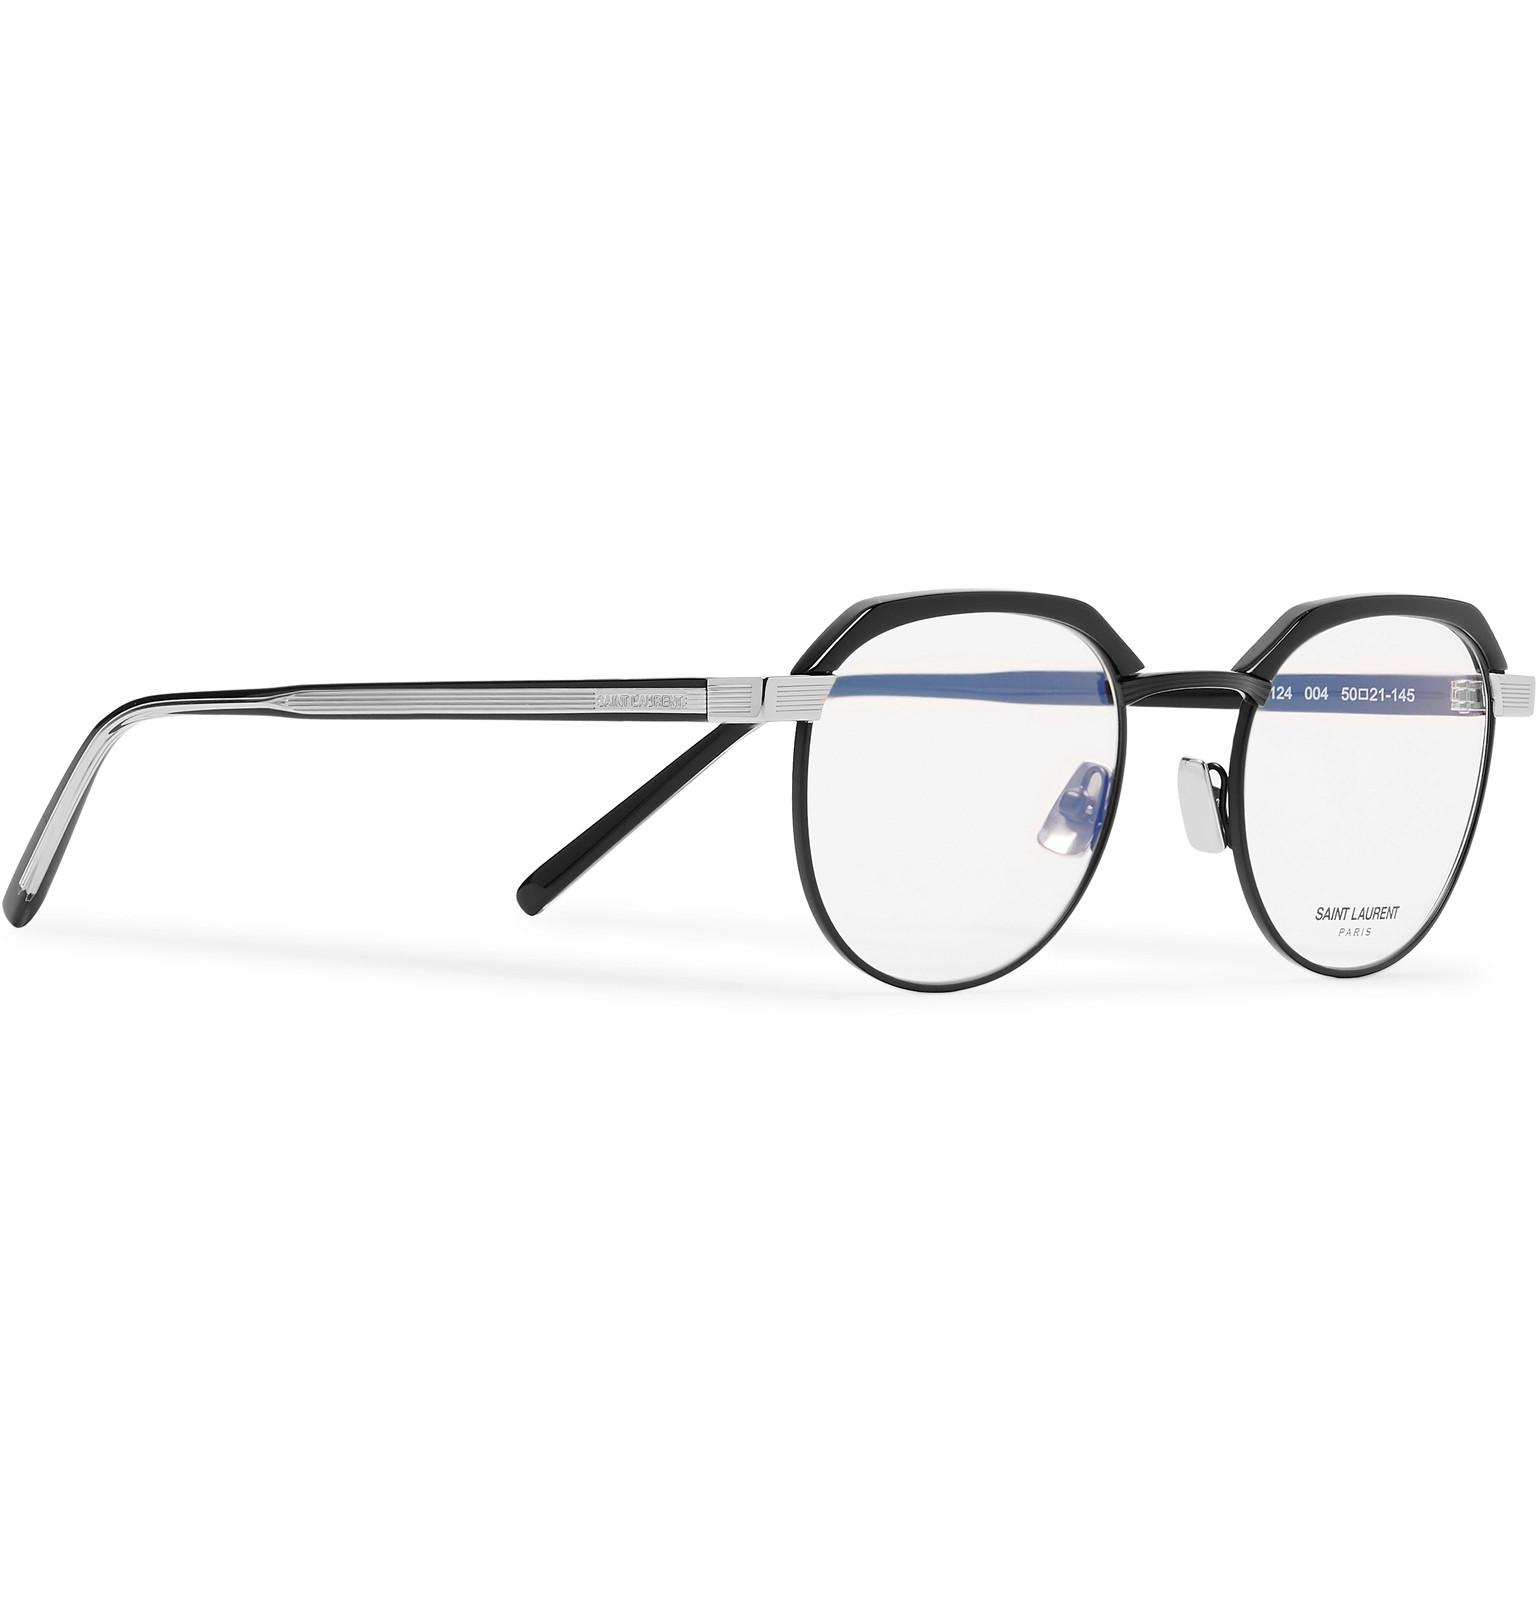 ff437d0105 Saint Laurent - Black Round-frame Acetate And Silver-tone Optical Glasses  for Men. View fullscreen